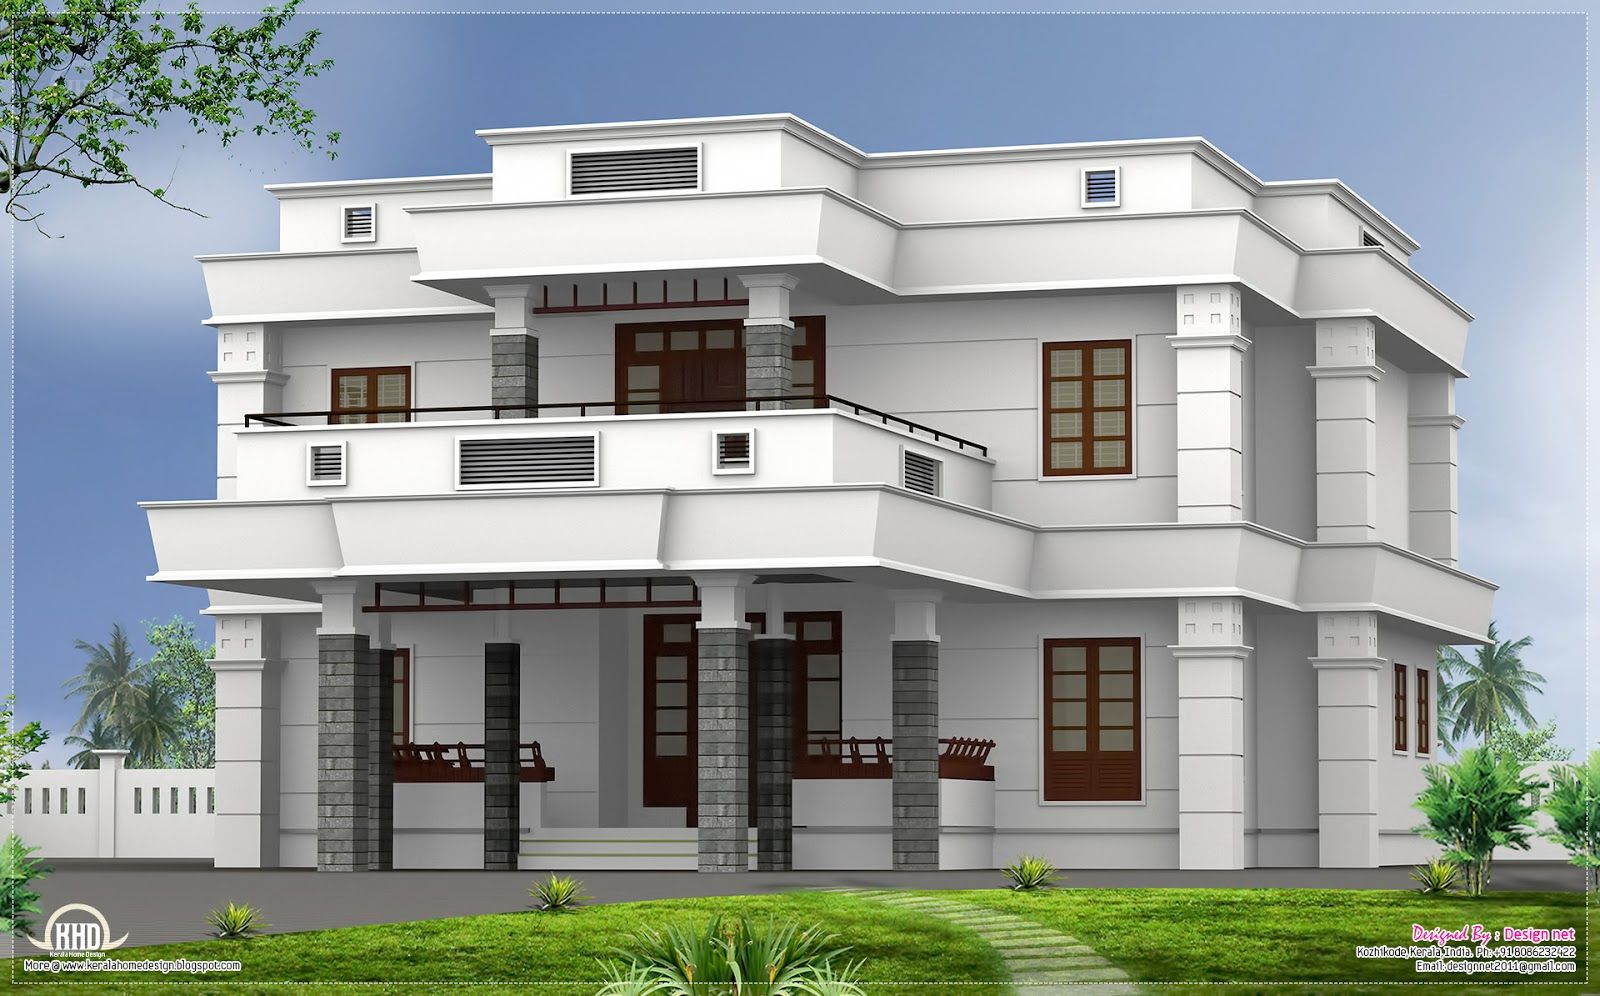 Flat roof homes designs bhk modern flat roof house for Best home designs 2015